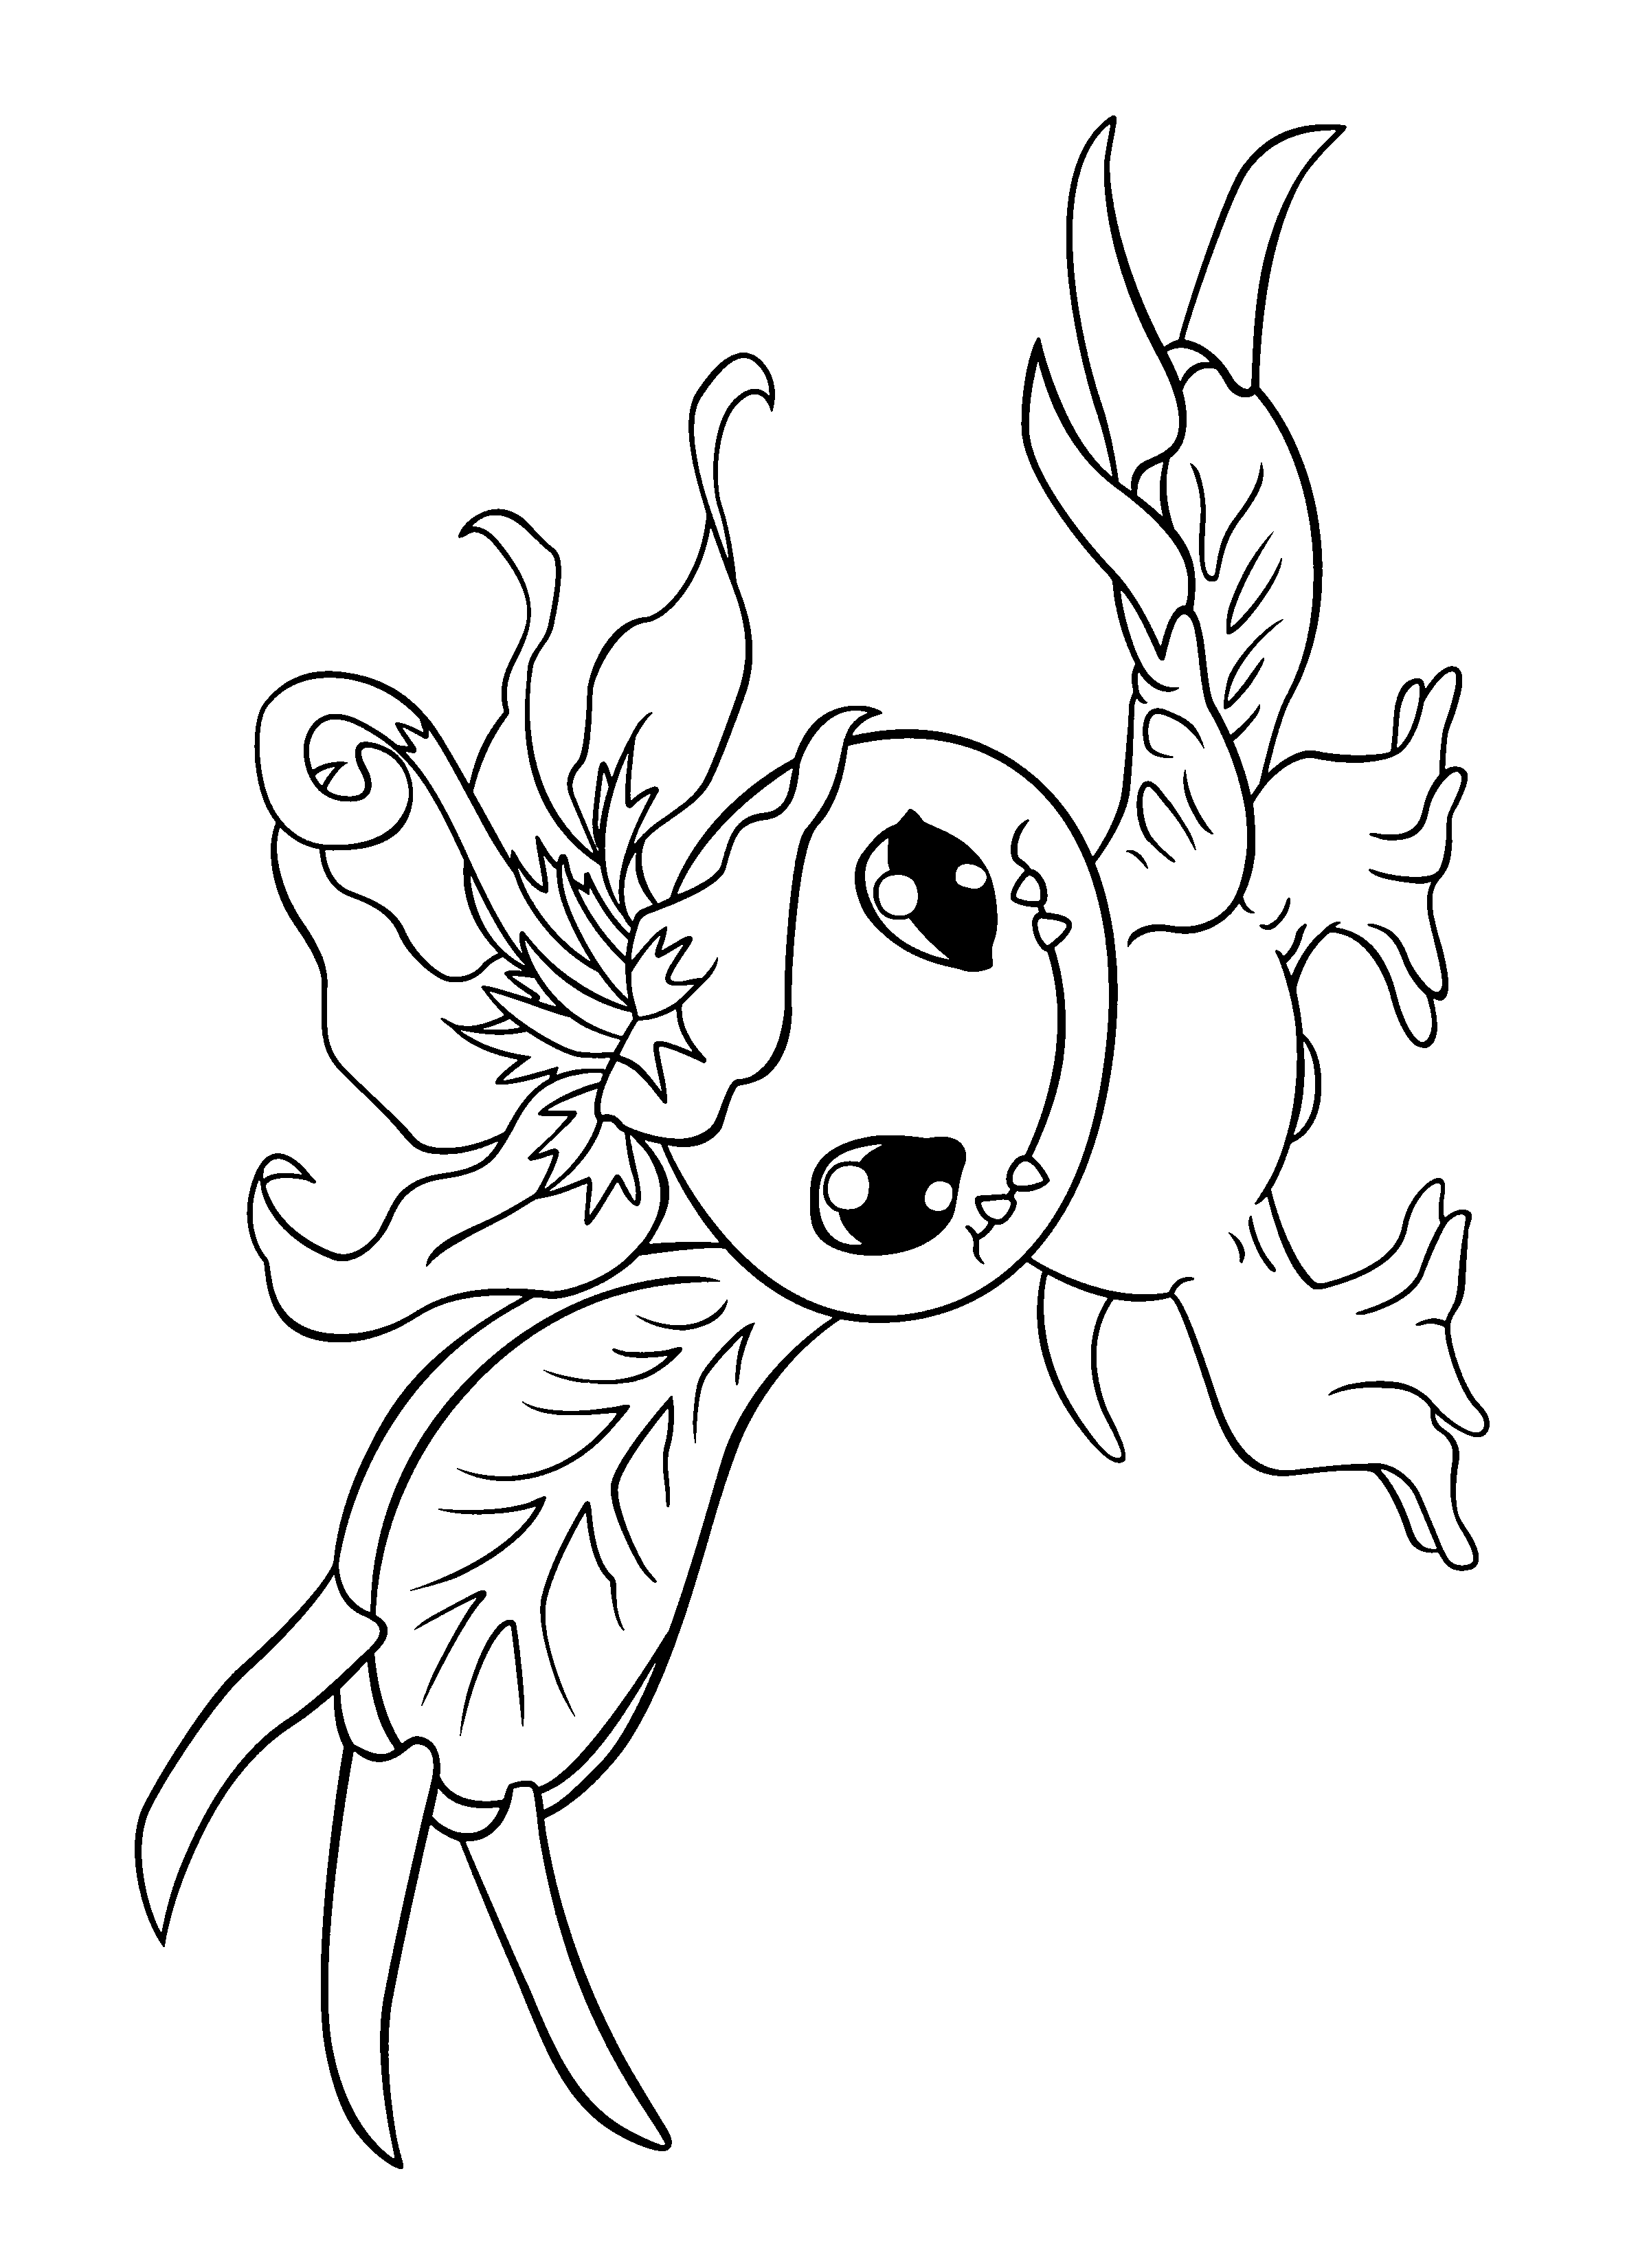 Coloring Page Digimon Coloring Pages 19391, - Bestofcoloring.com | 3300x2400